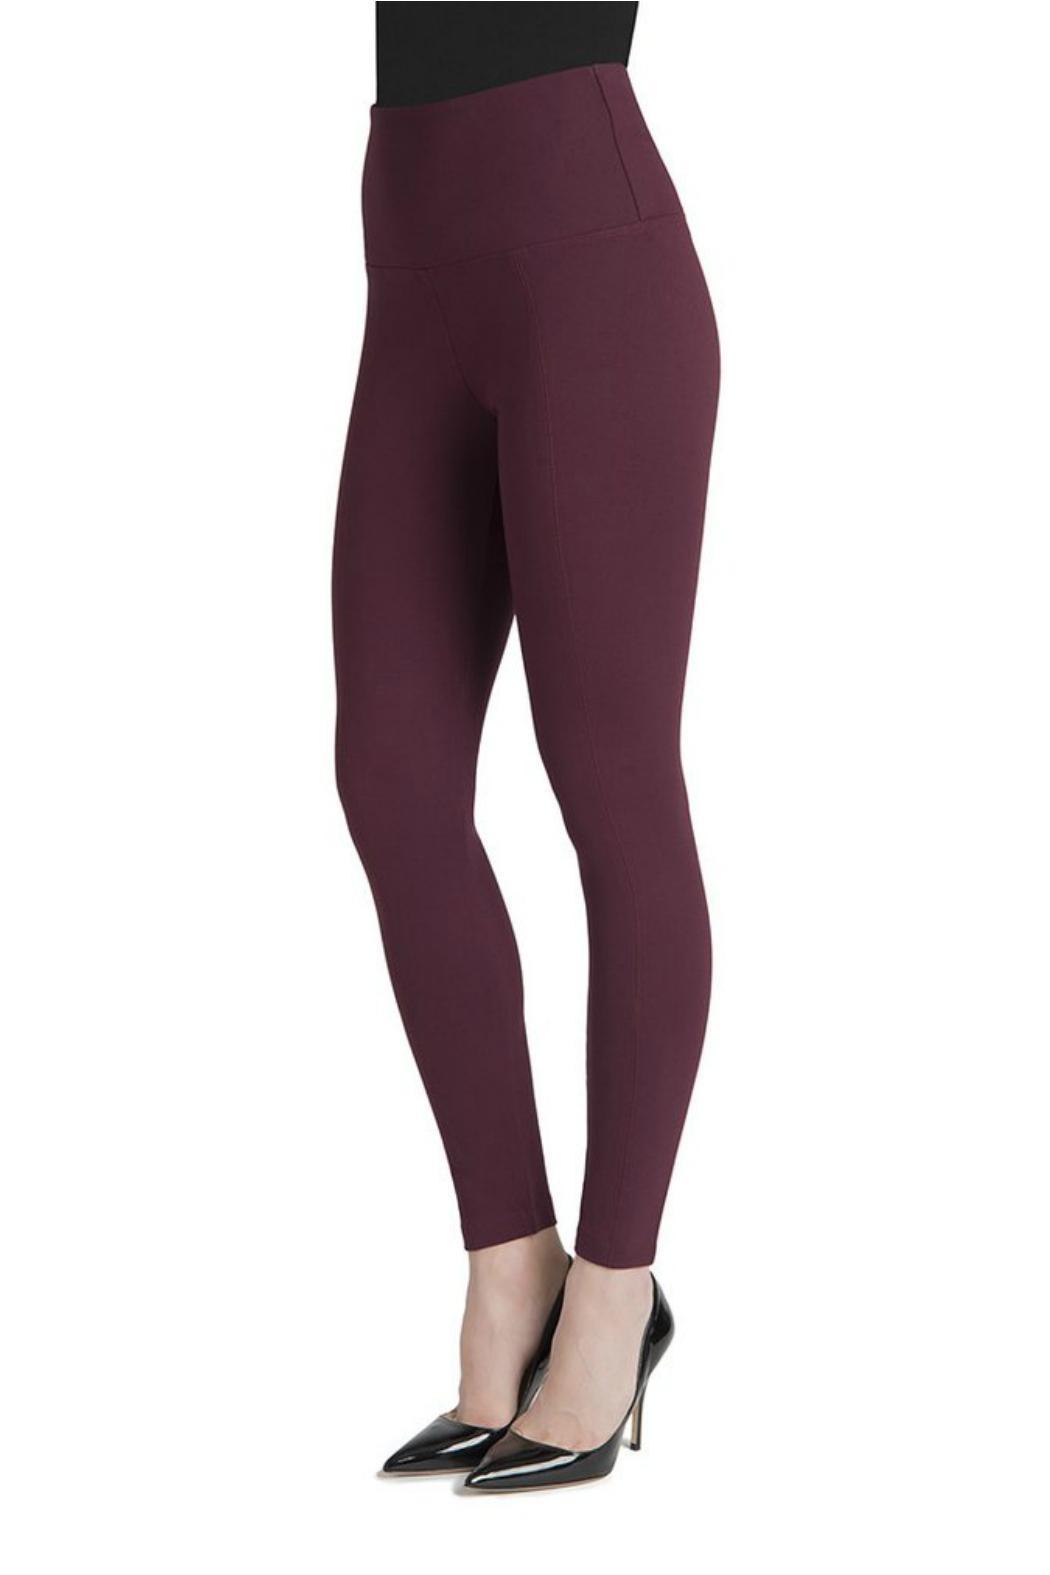 Lysse Center Seam Ponte Legging - Front Full Image